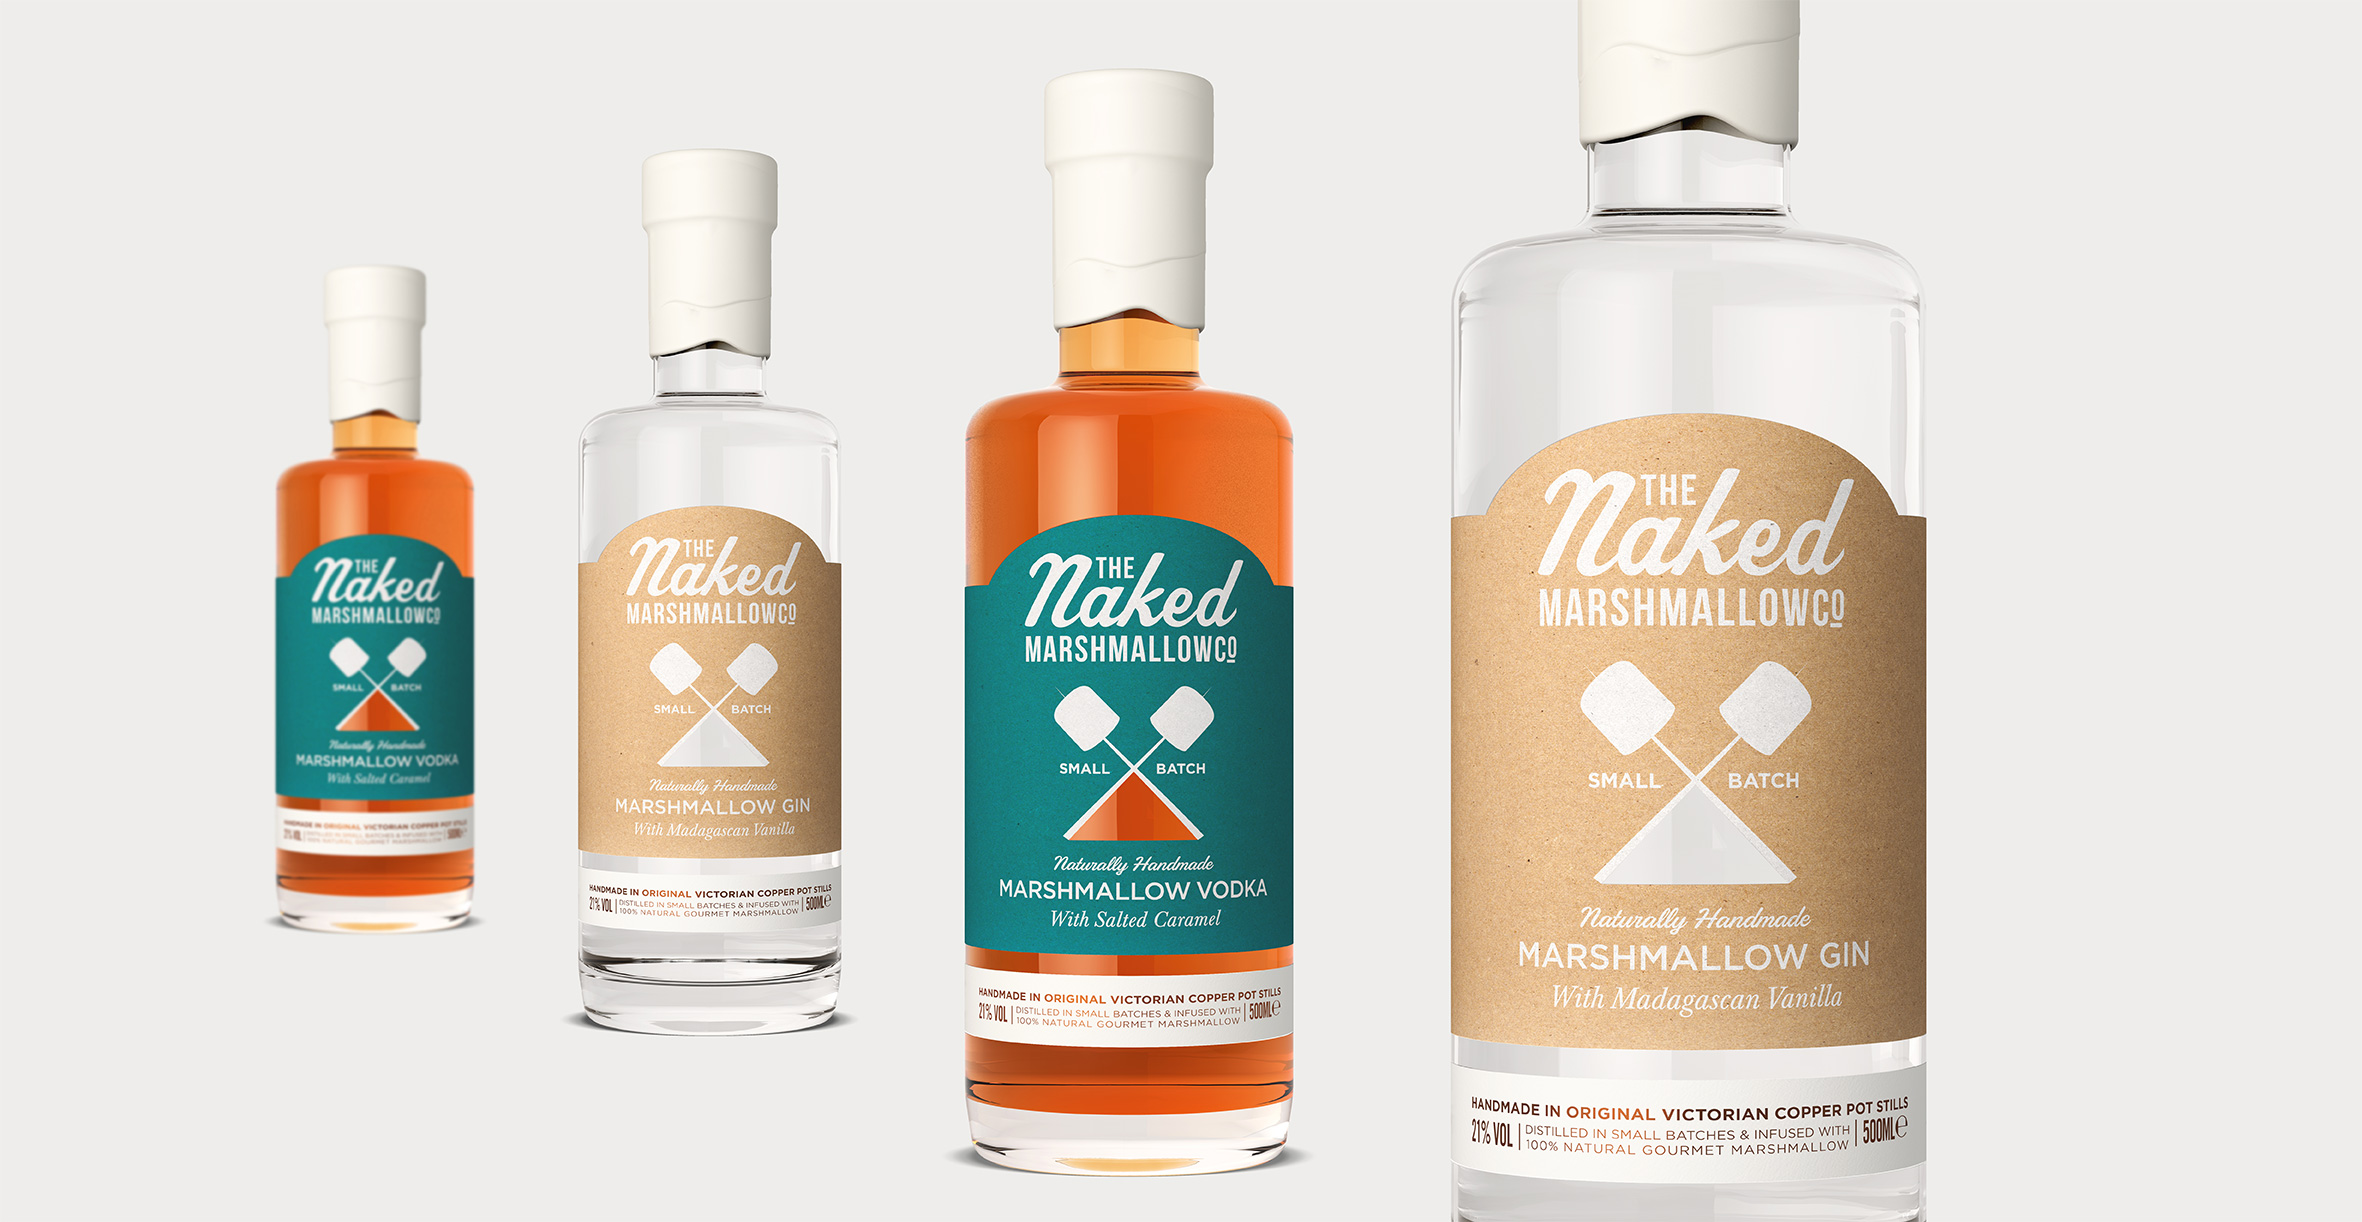 Naked Marshmallow Co. Alcohol Label Design